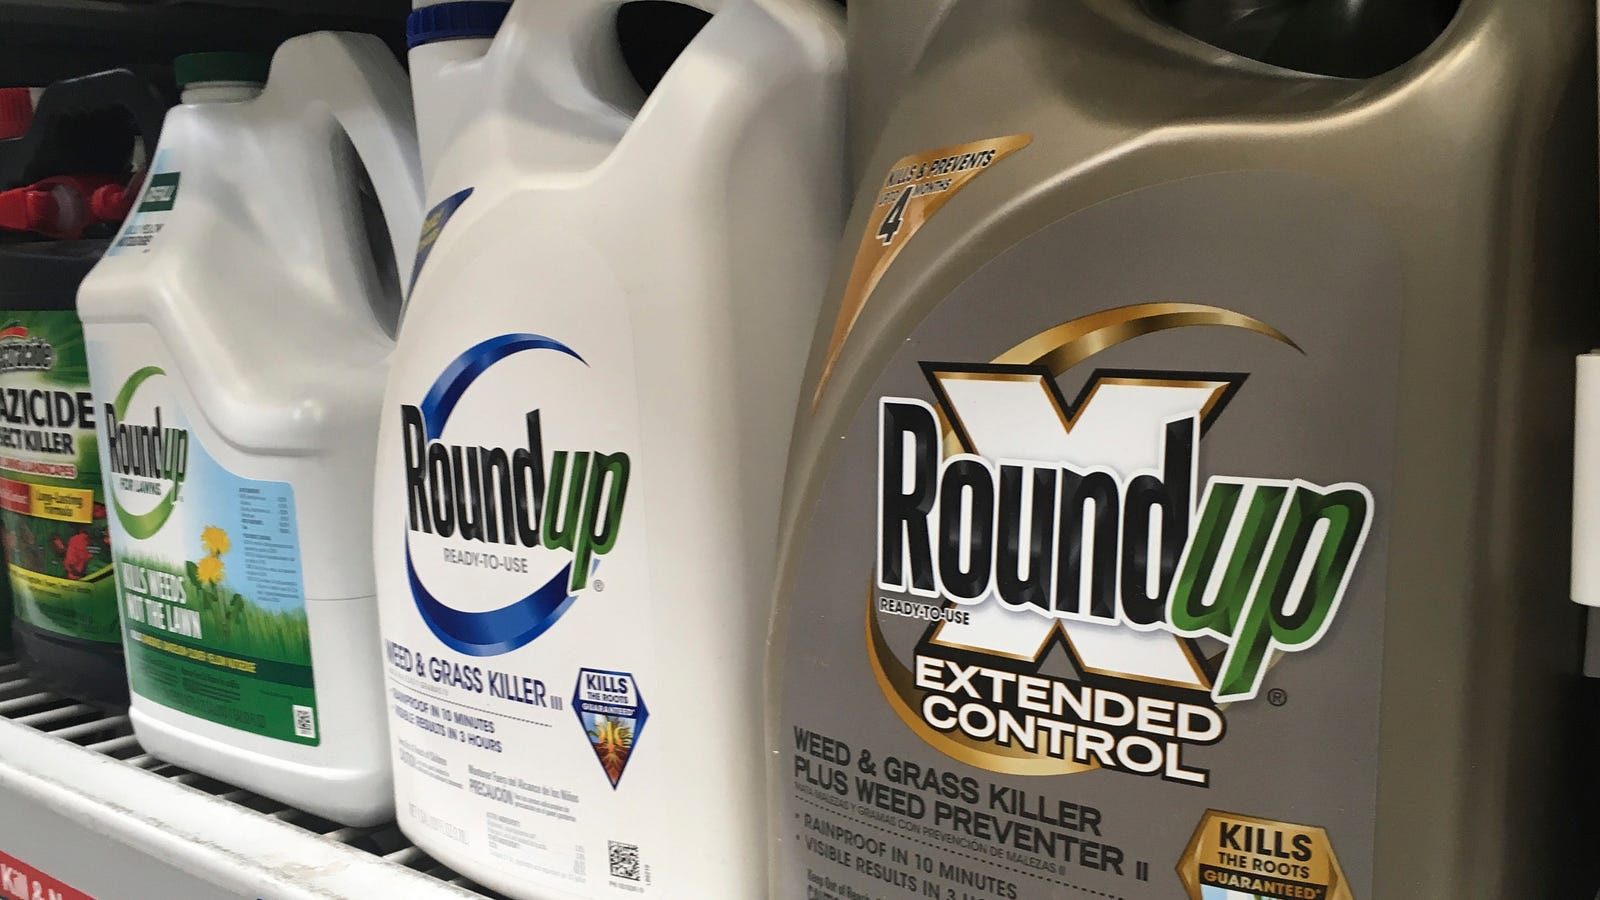 Austria on the Verge of Becoming First EU Country to Ban Controversial RoundUp Herbicide